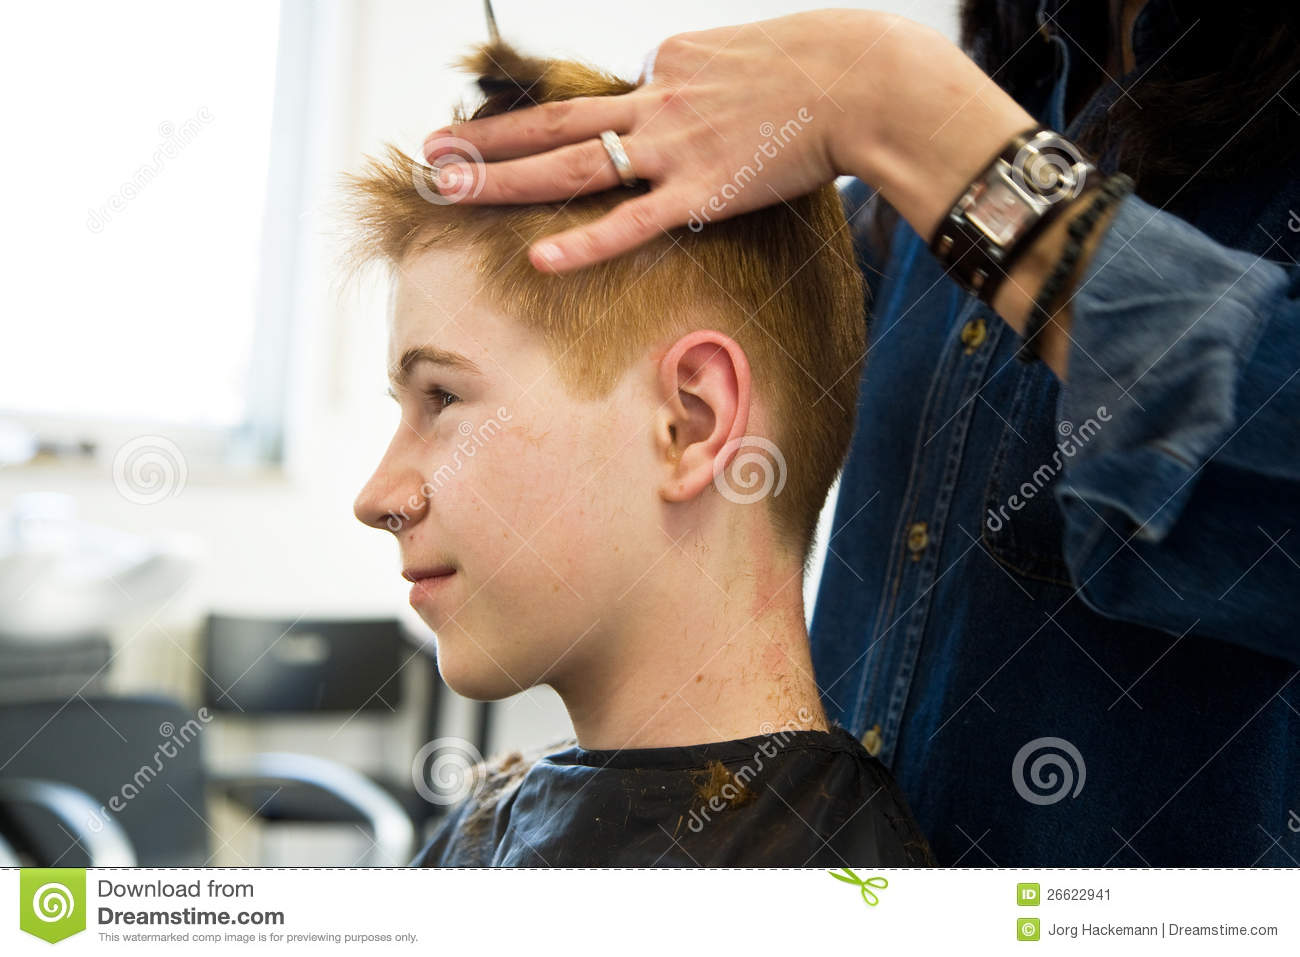 Young Boy With Red Hair Getting A Haircut Stock Image Image Of